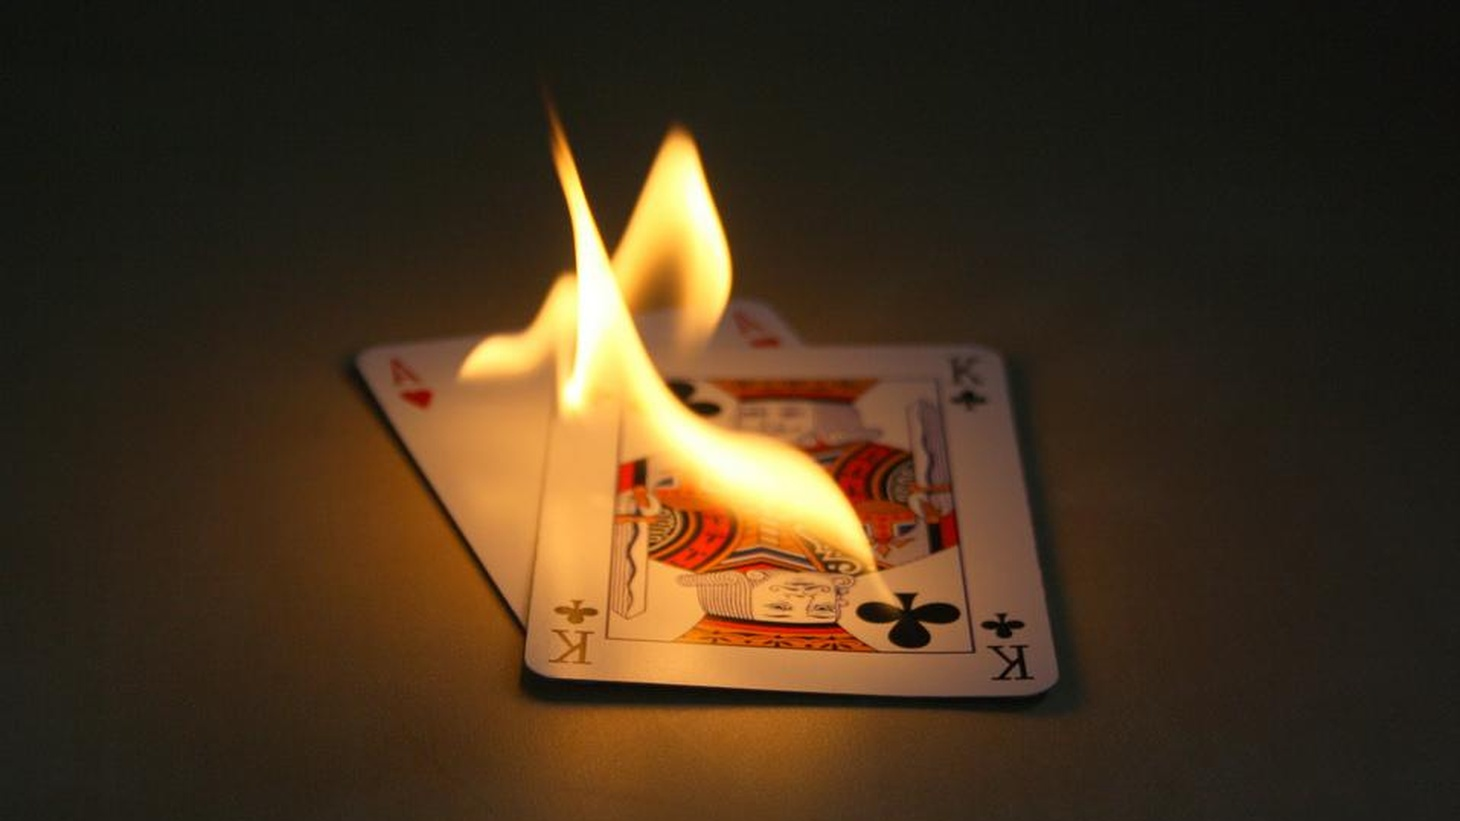 Stories about the casino game everyone incorrectly thinks they can beat...